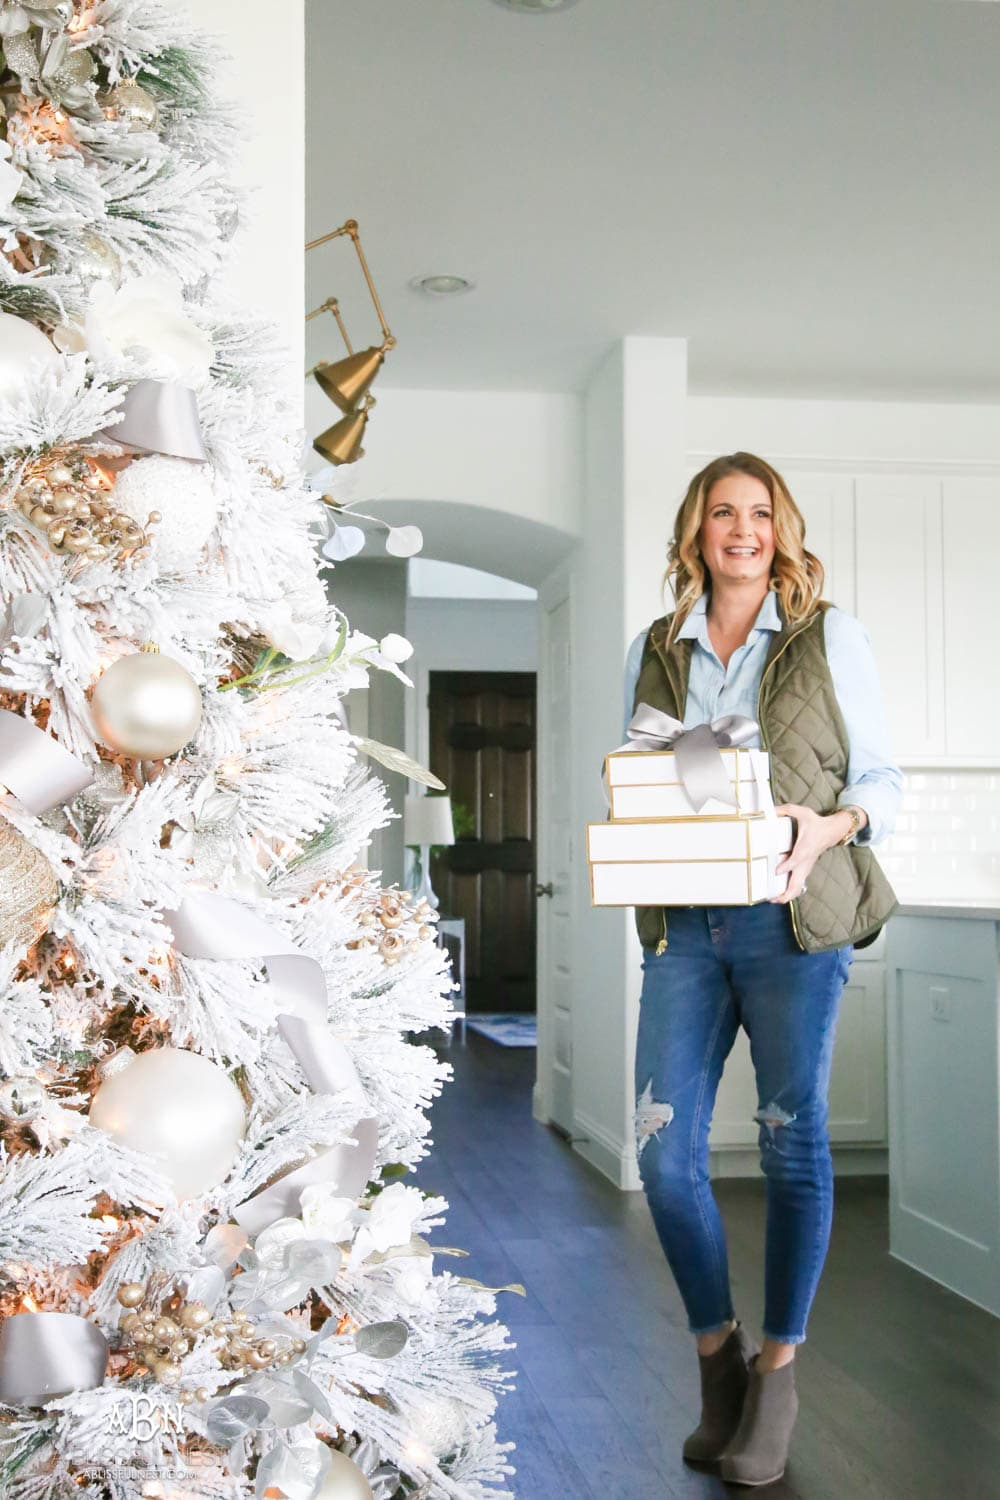 Silver and gold Christmas tree in a open concept floor plan with lots of blue home decor accents. Check out all the white, silver and gold Christmas decor in this holiday home tour on ABlissfulNest.com. #ABlissfulNest #Christmasdecor #Christmasdecorating #CoastalChristmasdecor